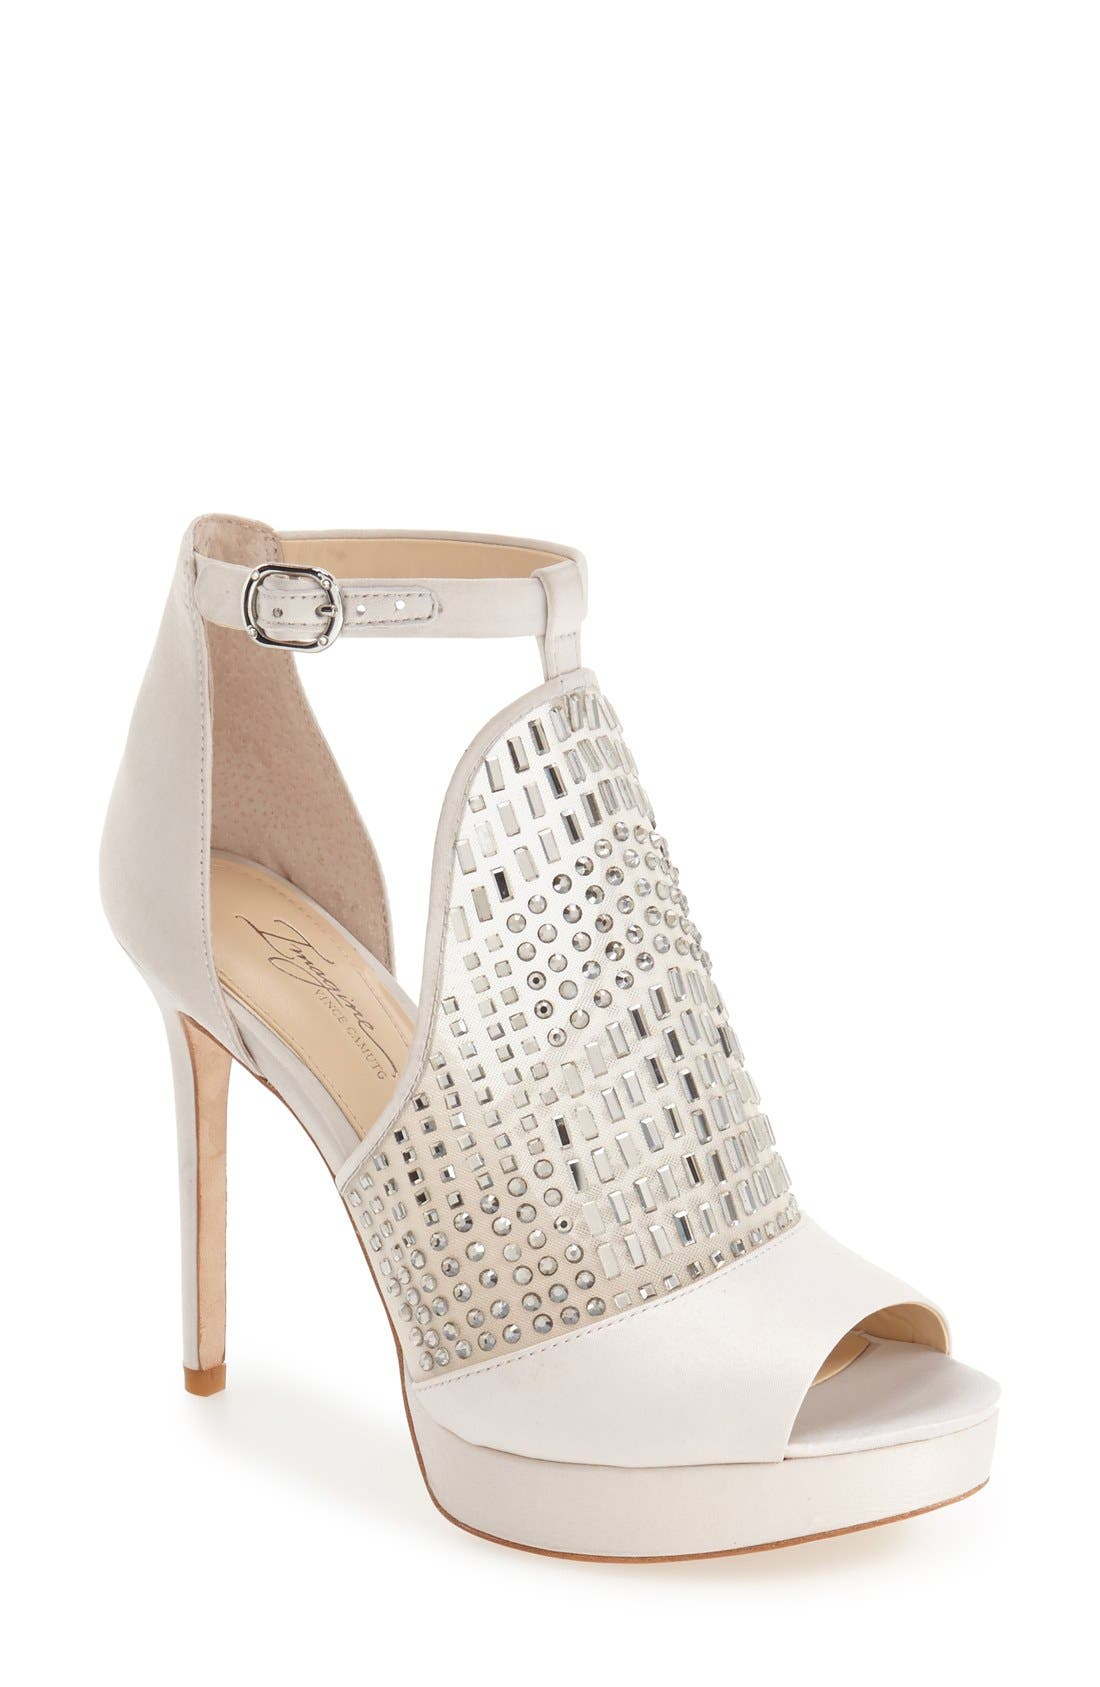 Main Image - Imagine by Vince Camuto 'Keir' T-Strap Platform Sandal (Women)